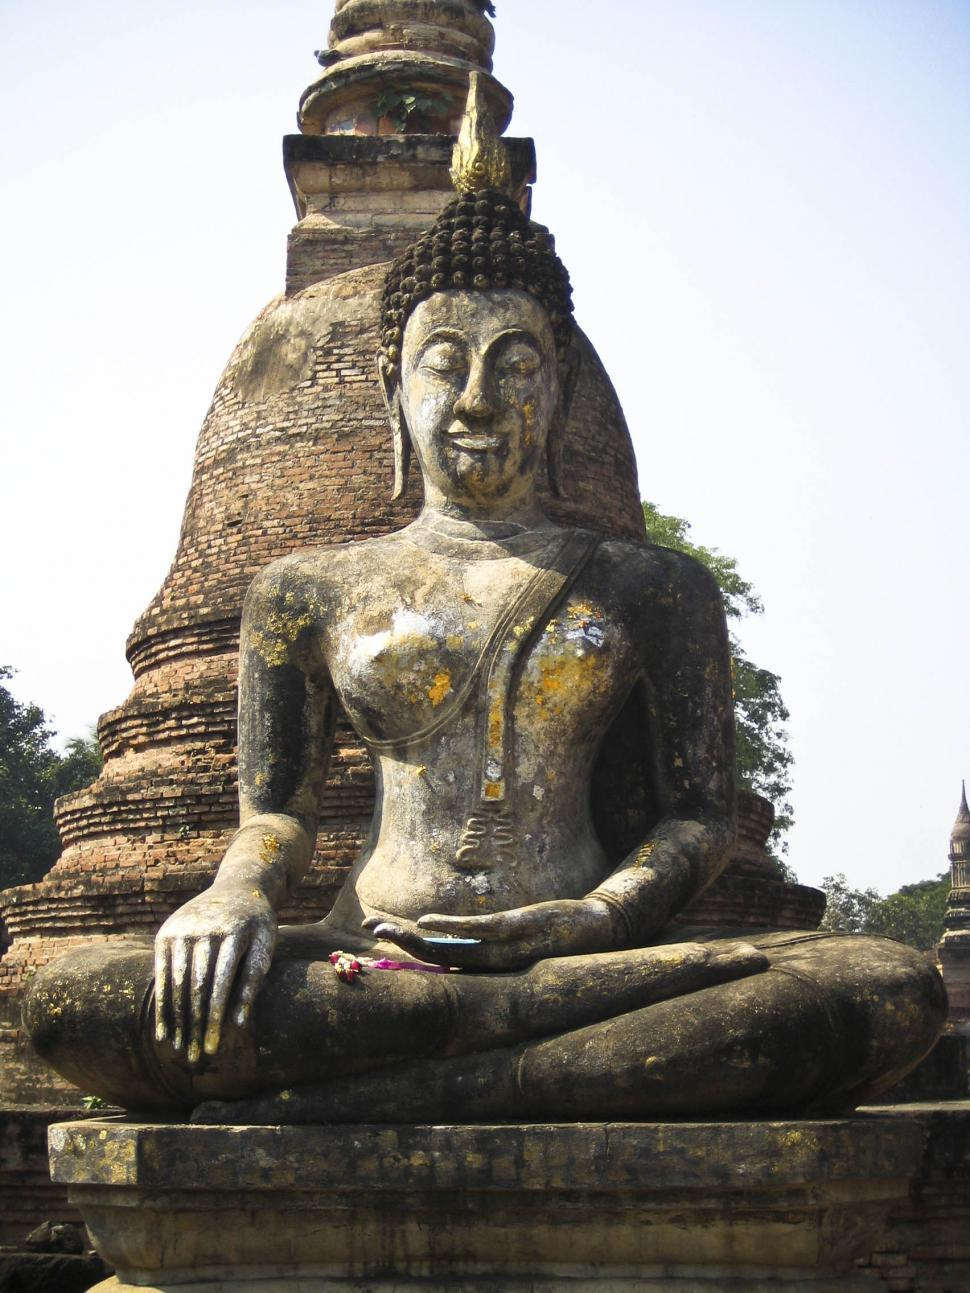 Download Free Stock HD Photo of buddah statue Online